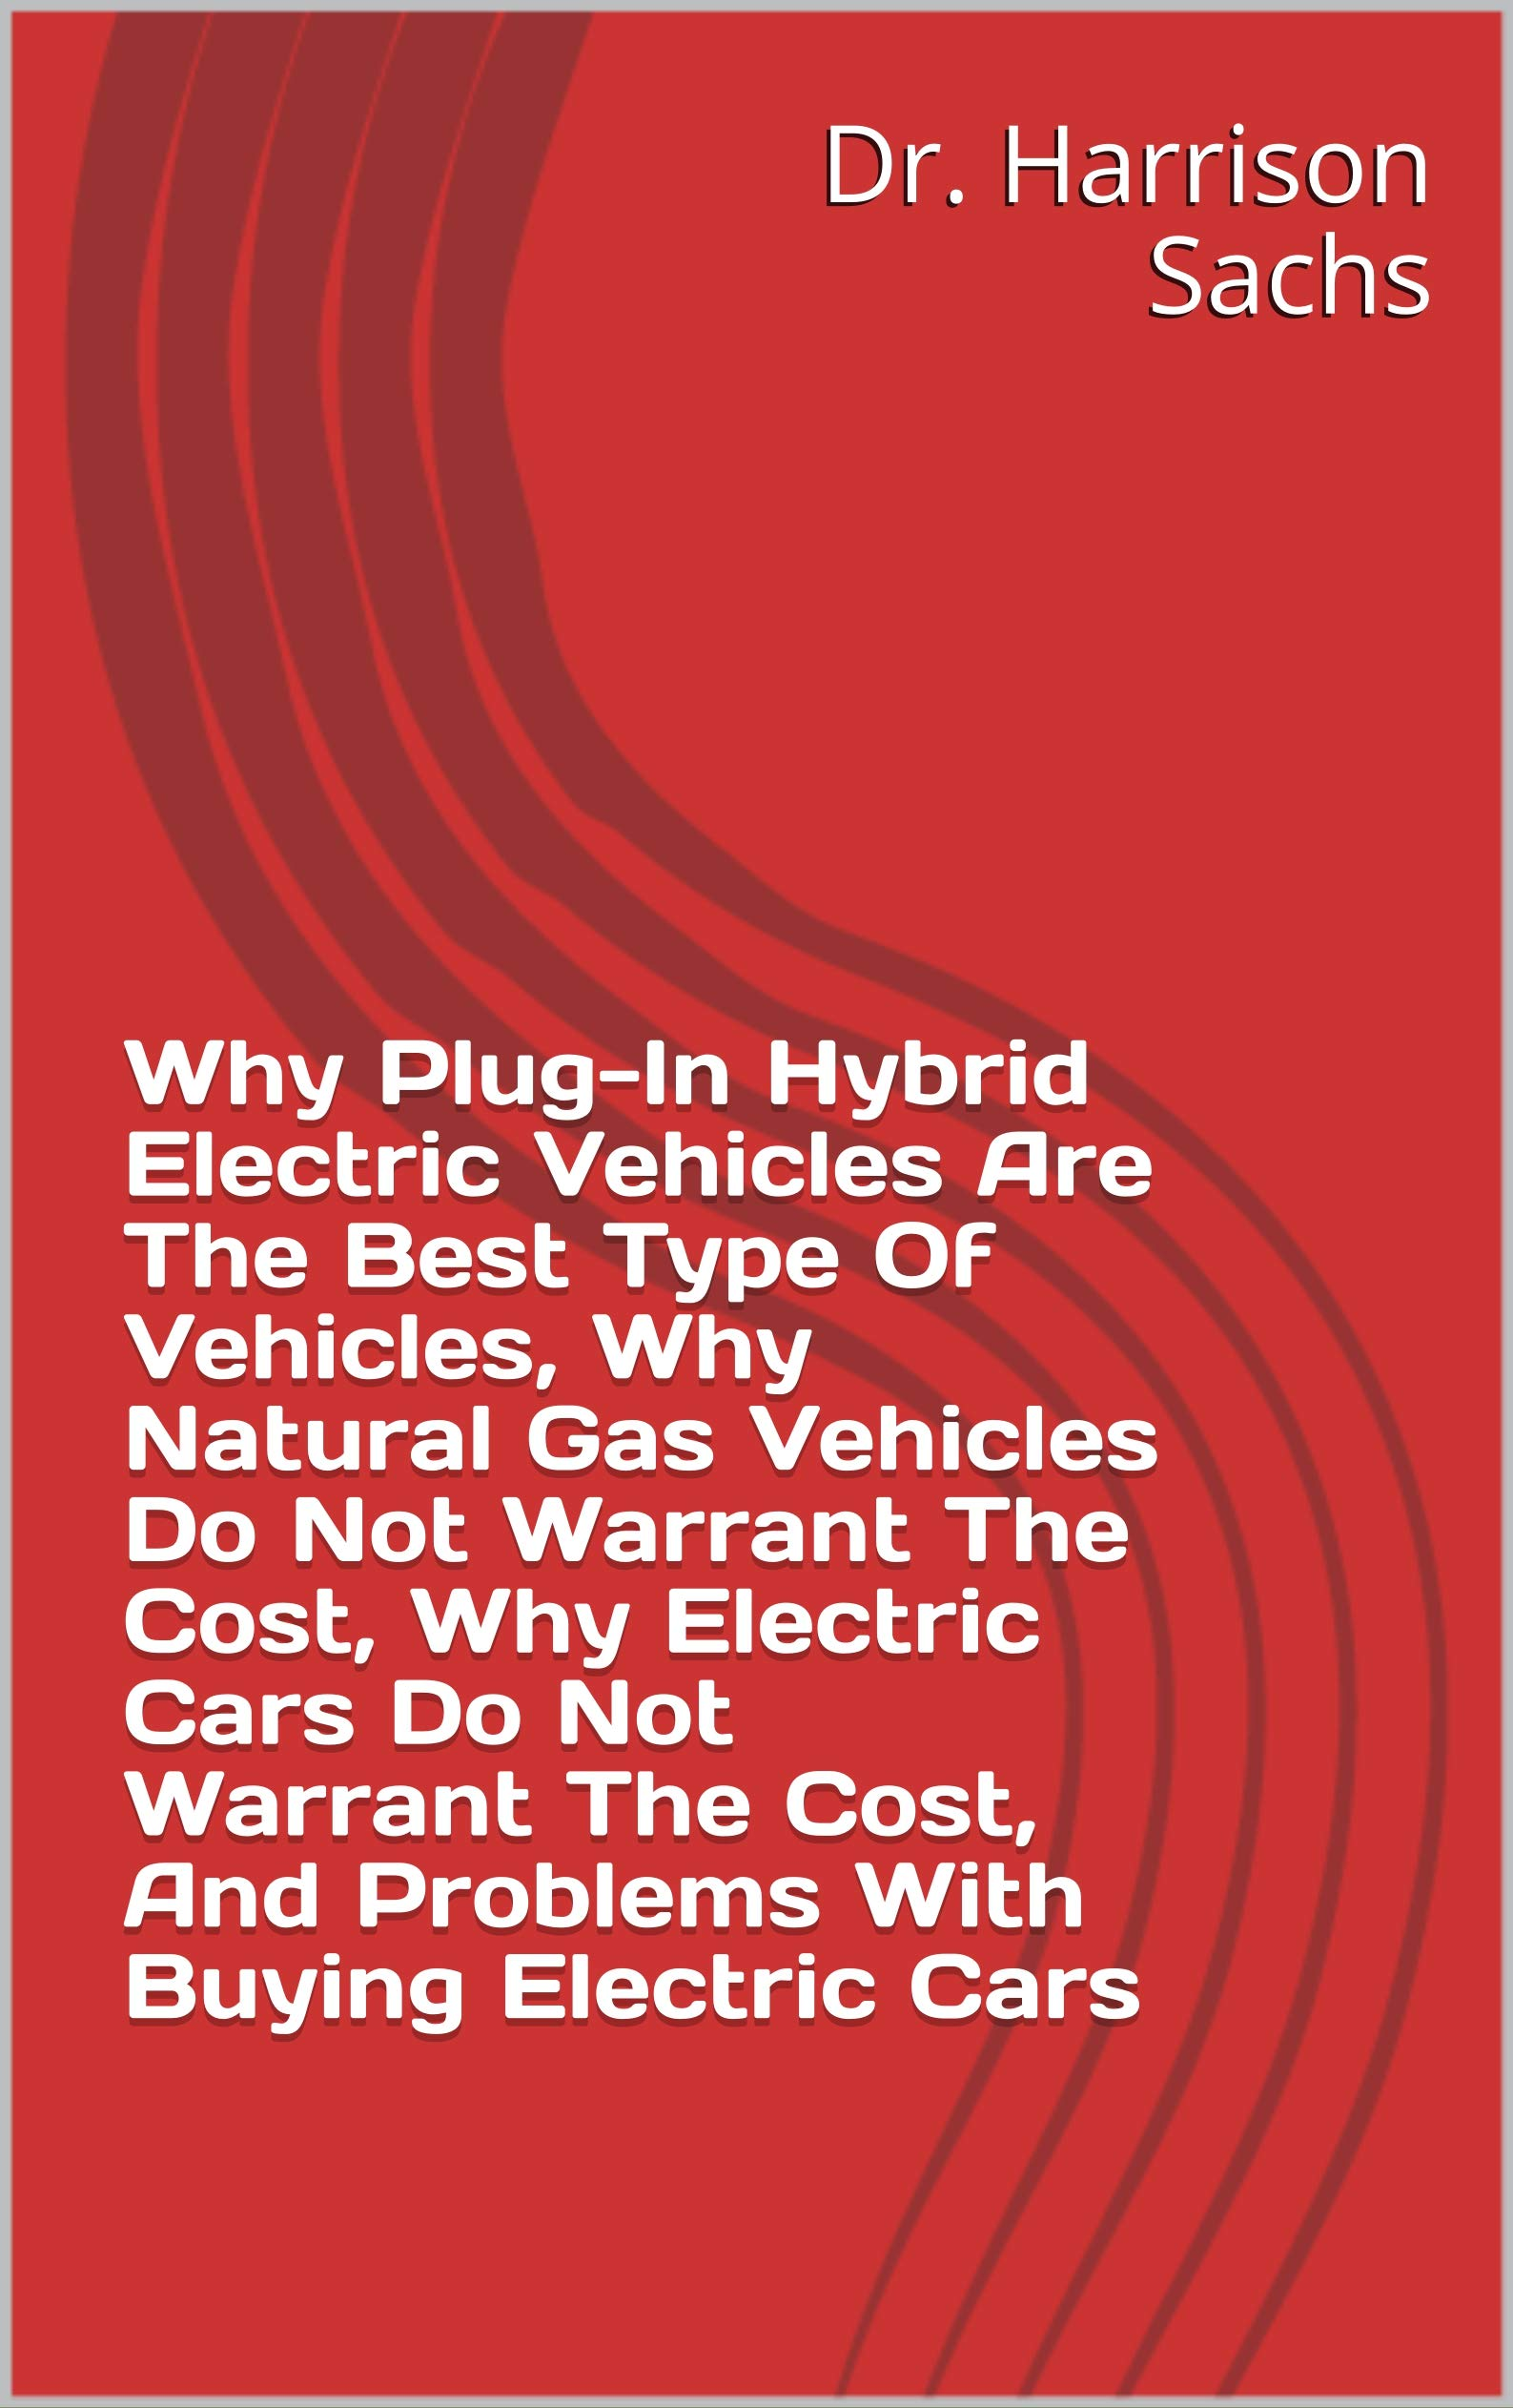 Why Plug-In Hybrid Electric Vehicles Are The Best Type Of Vehicles, Why Natural Gas Vehicles Do Not Warrant The Cost, Why Electric Cars Do Not Warrant The Cost, And Problems With Buying Electric Cars